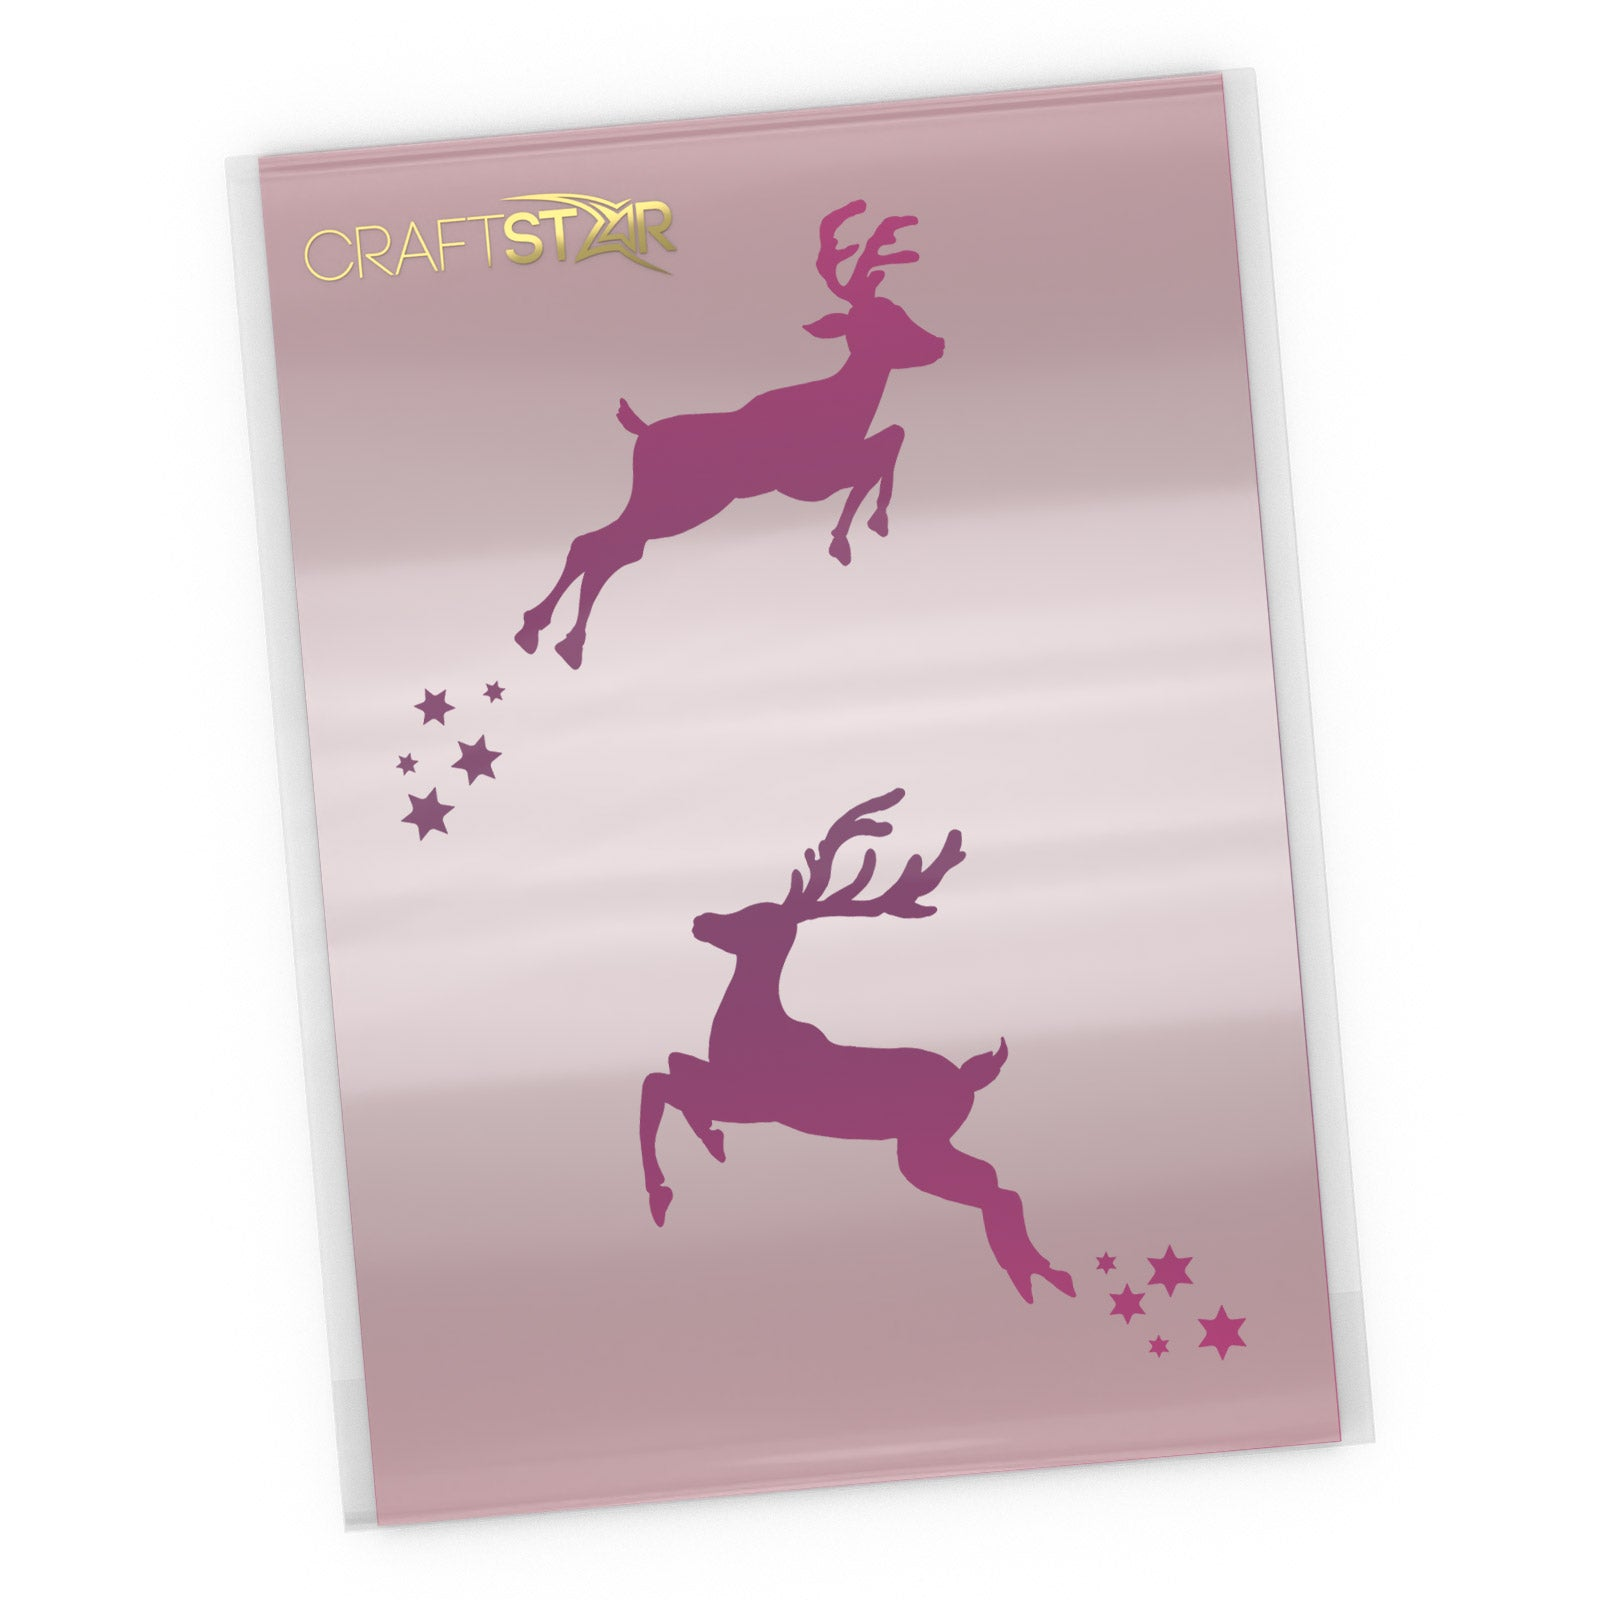 Small Reindeer Stencils - A5 Size Craft Template